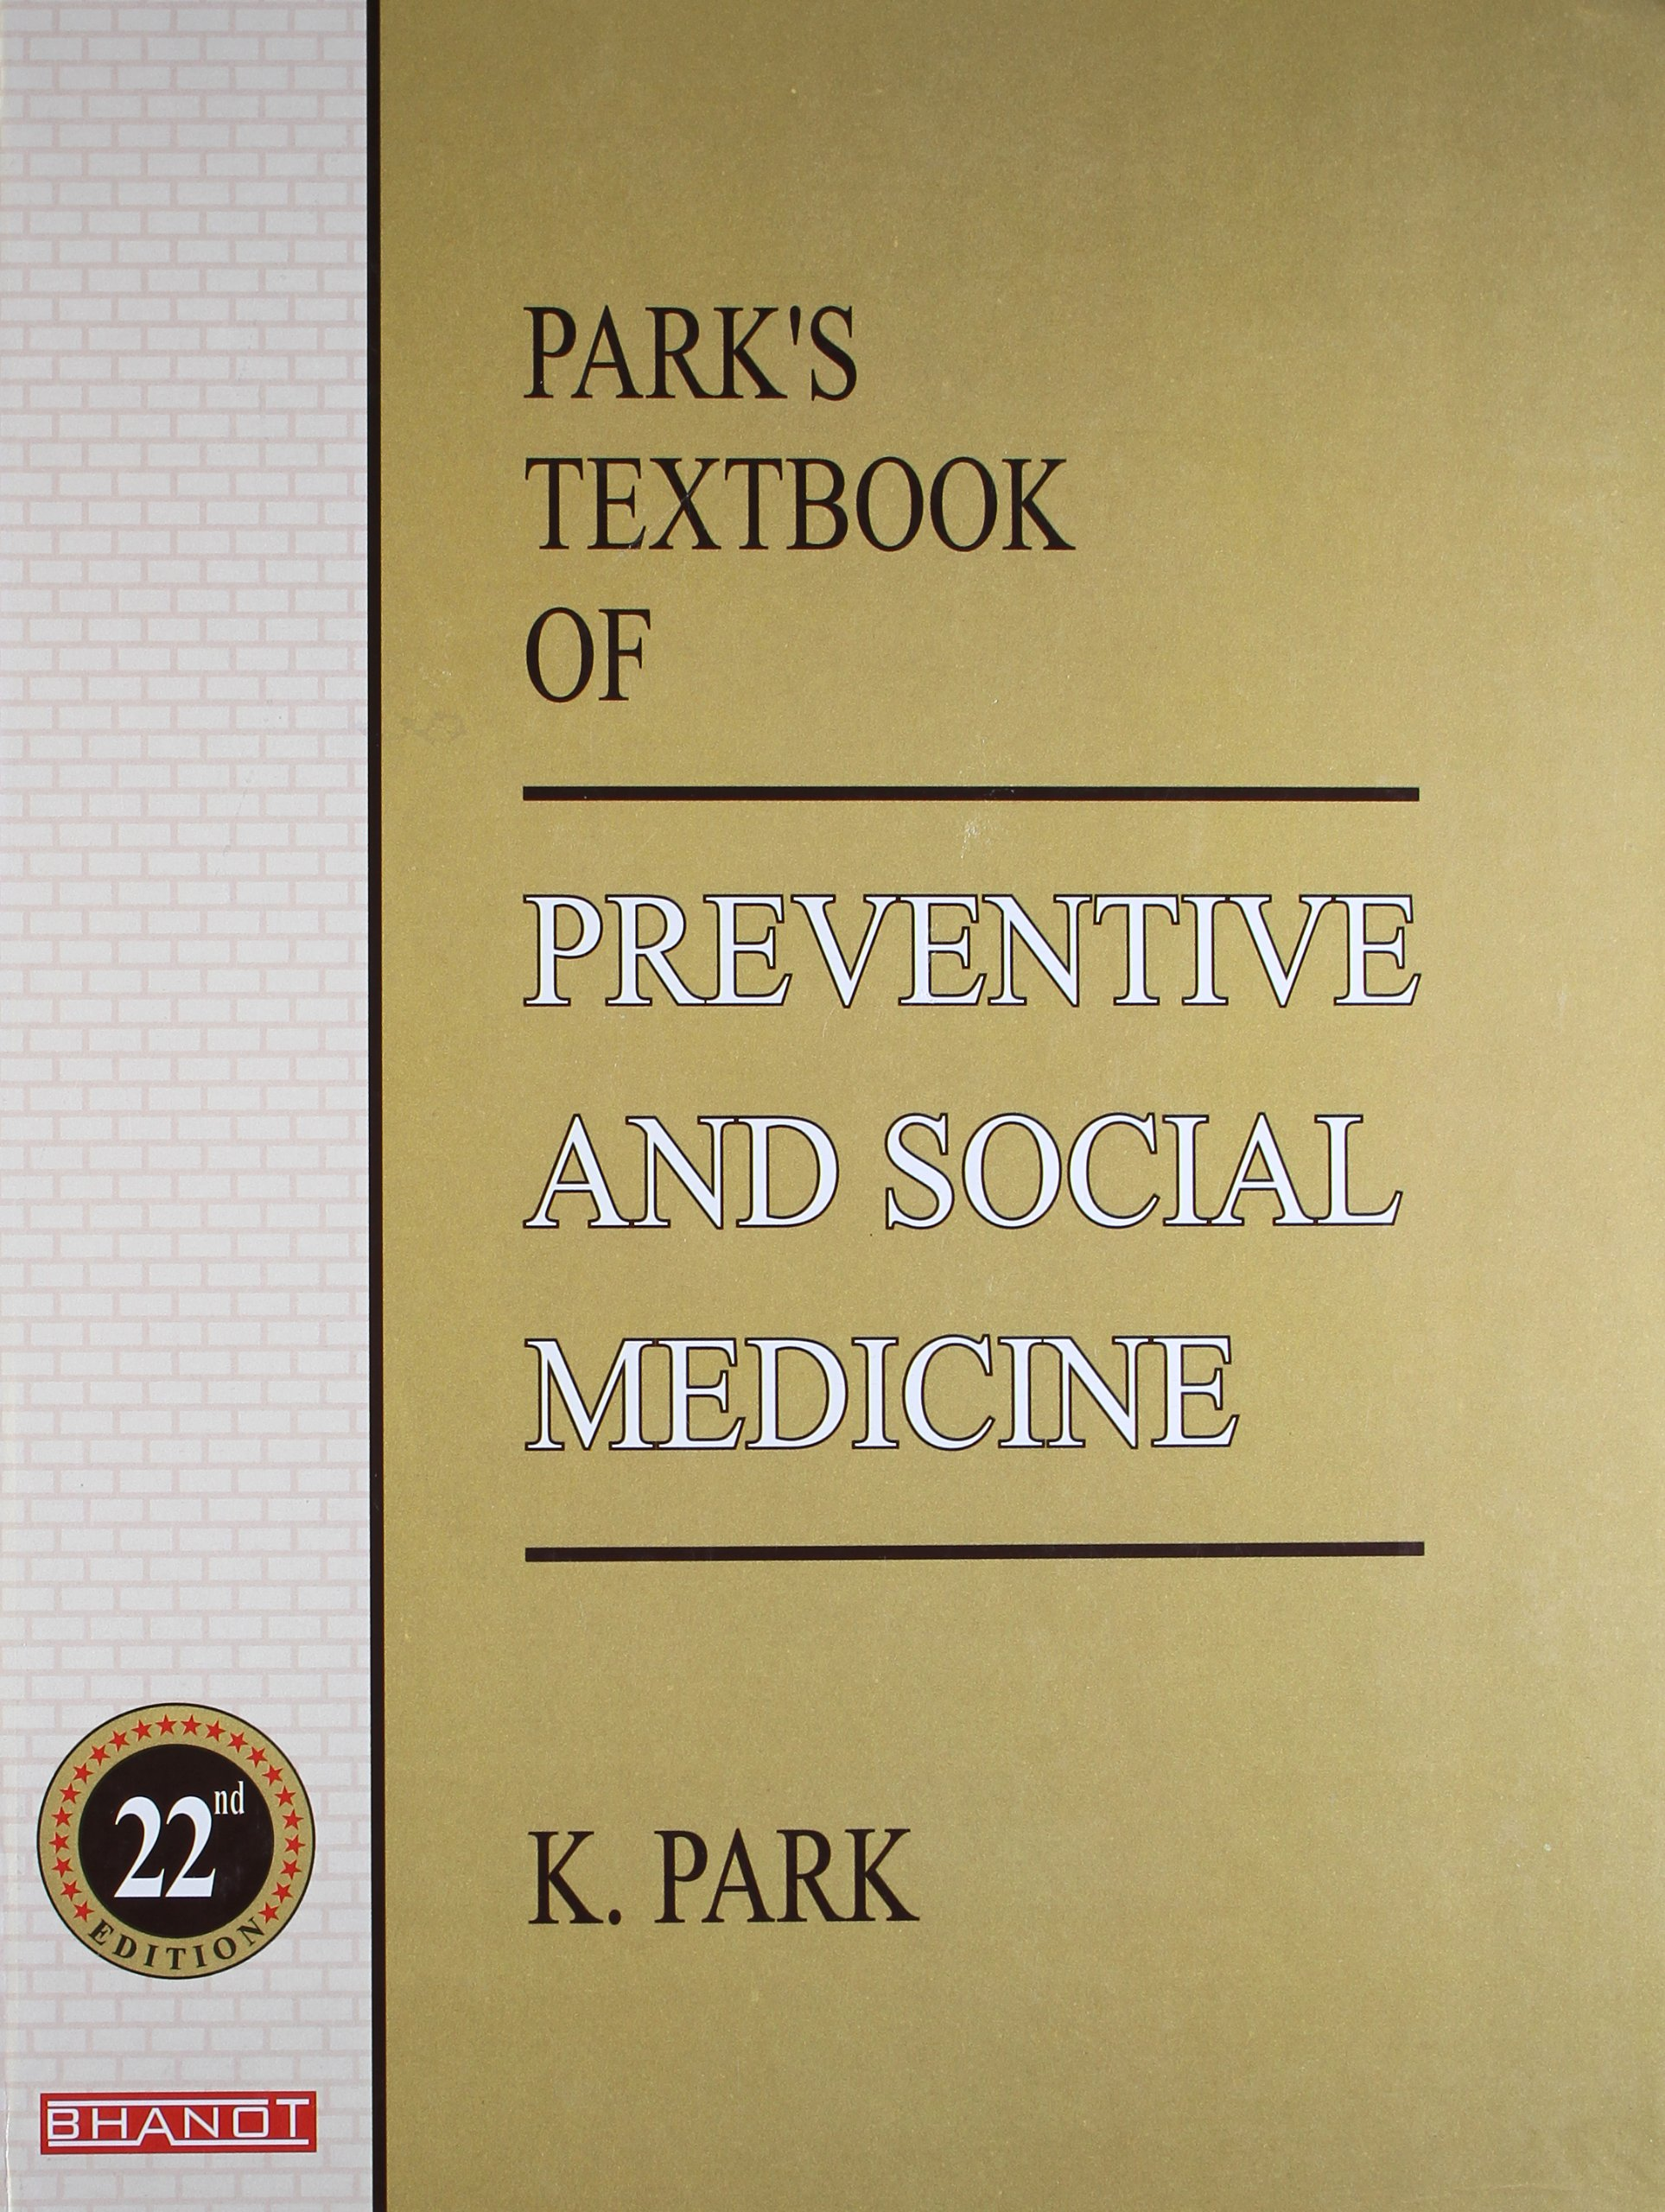 Parks textbook of preventive and social medicine 24th edition pdf.